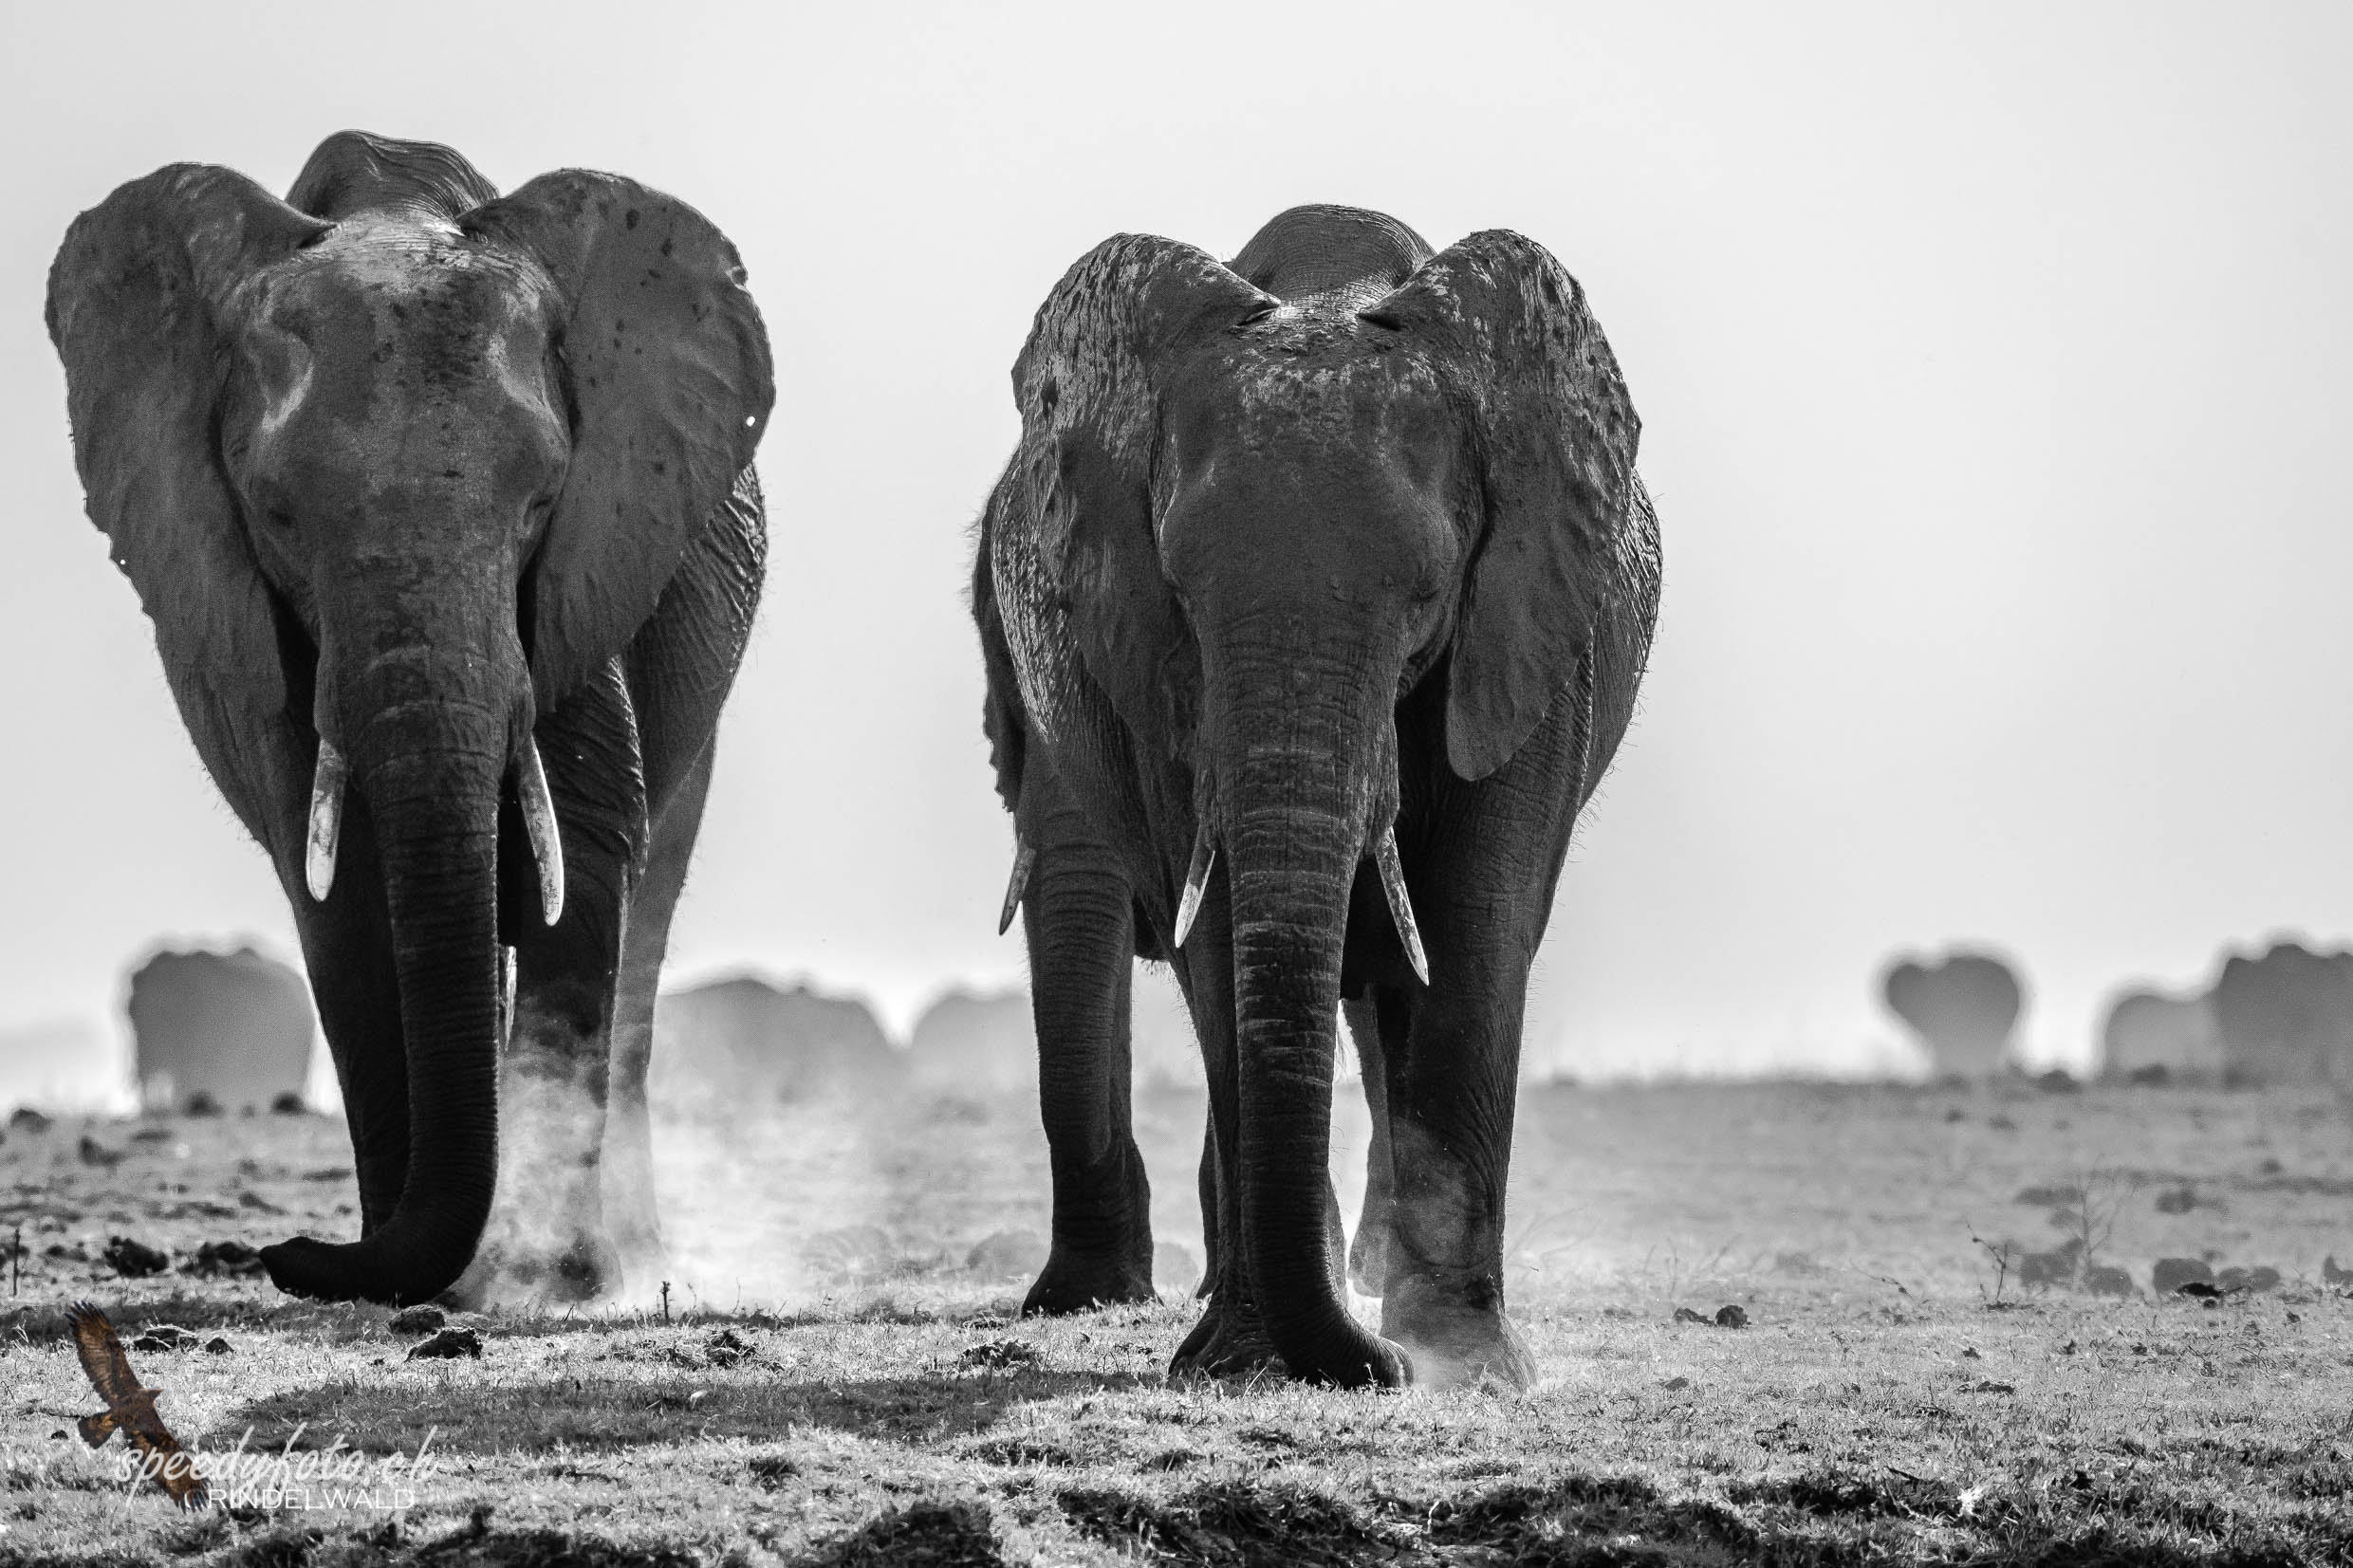 Aproching Elefants - black and white